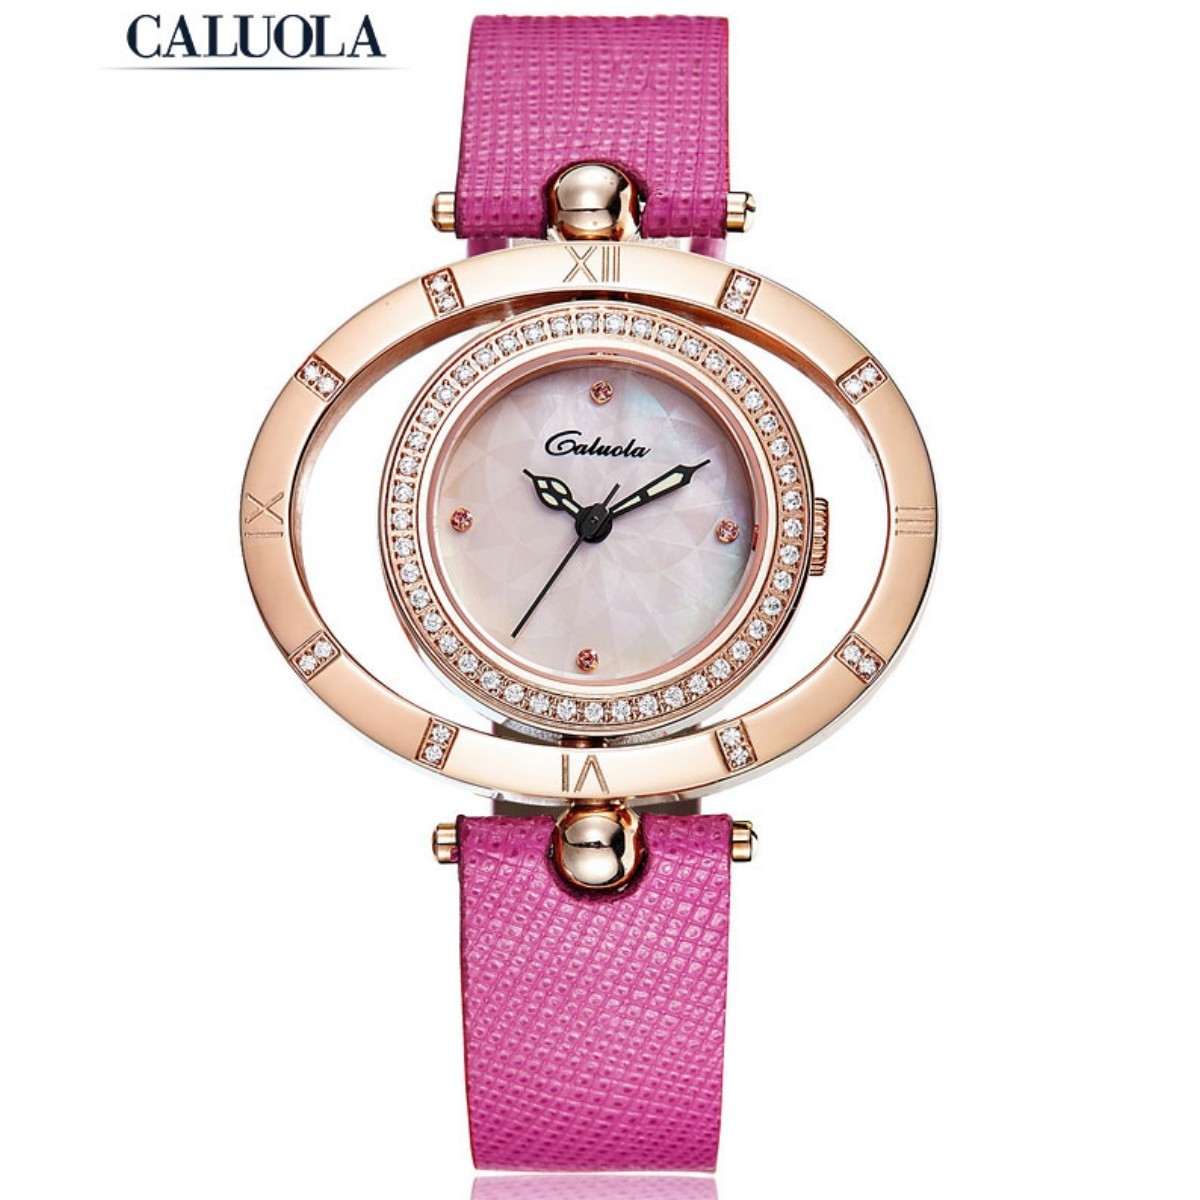 Caluola Women Watch 25mm Rose Gold  CA1126